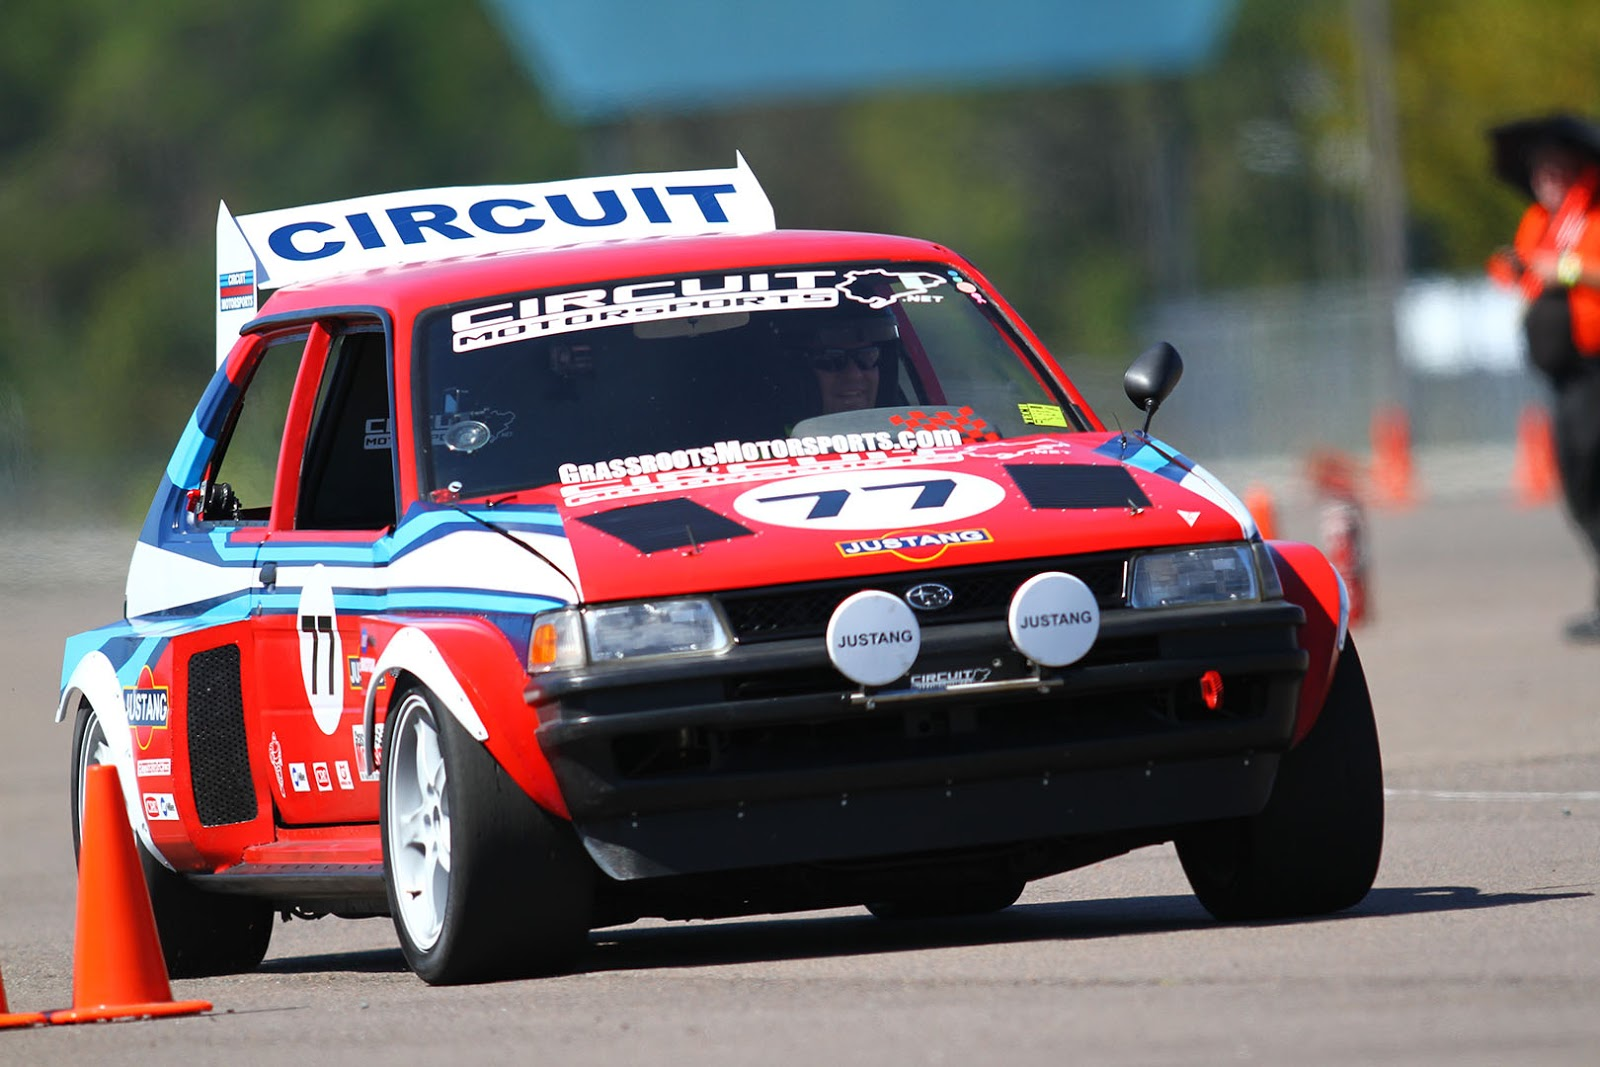 Circuit Motorsports: Flat-Out: V8 Powered Subaru Justy Wins the